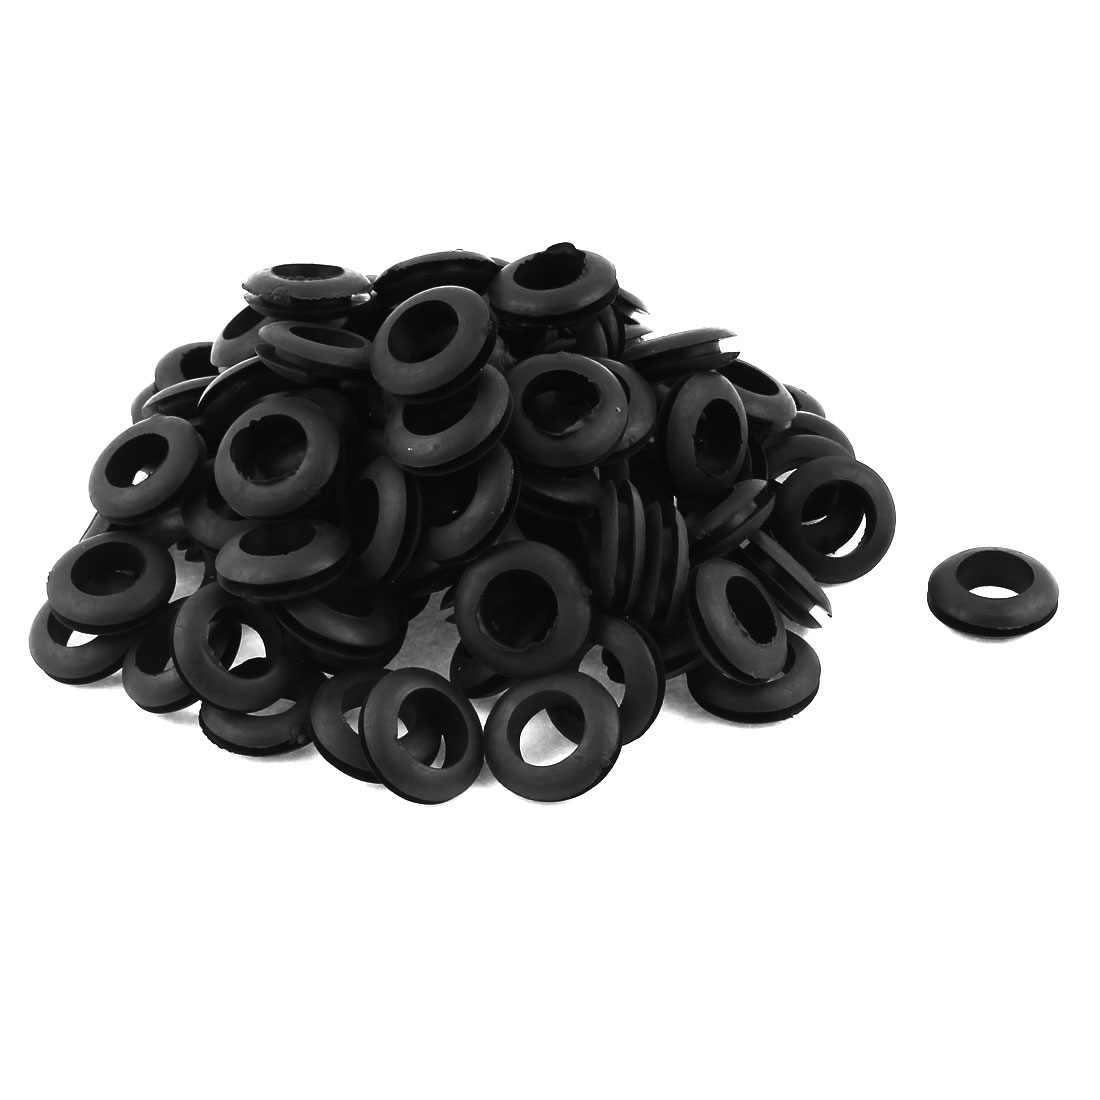 100 Pcs Black Rubber 14mm Open Hole Ring Dual Side Cable Wiring Grommet